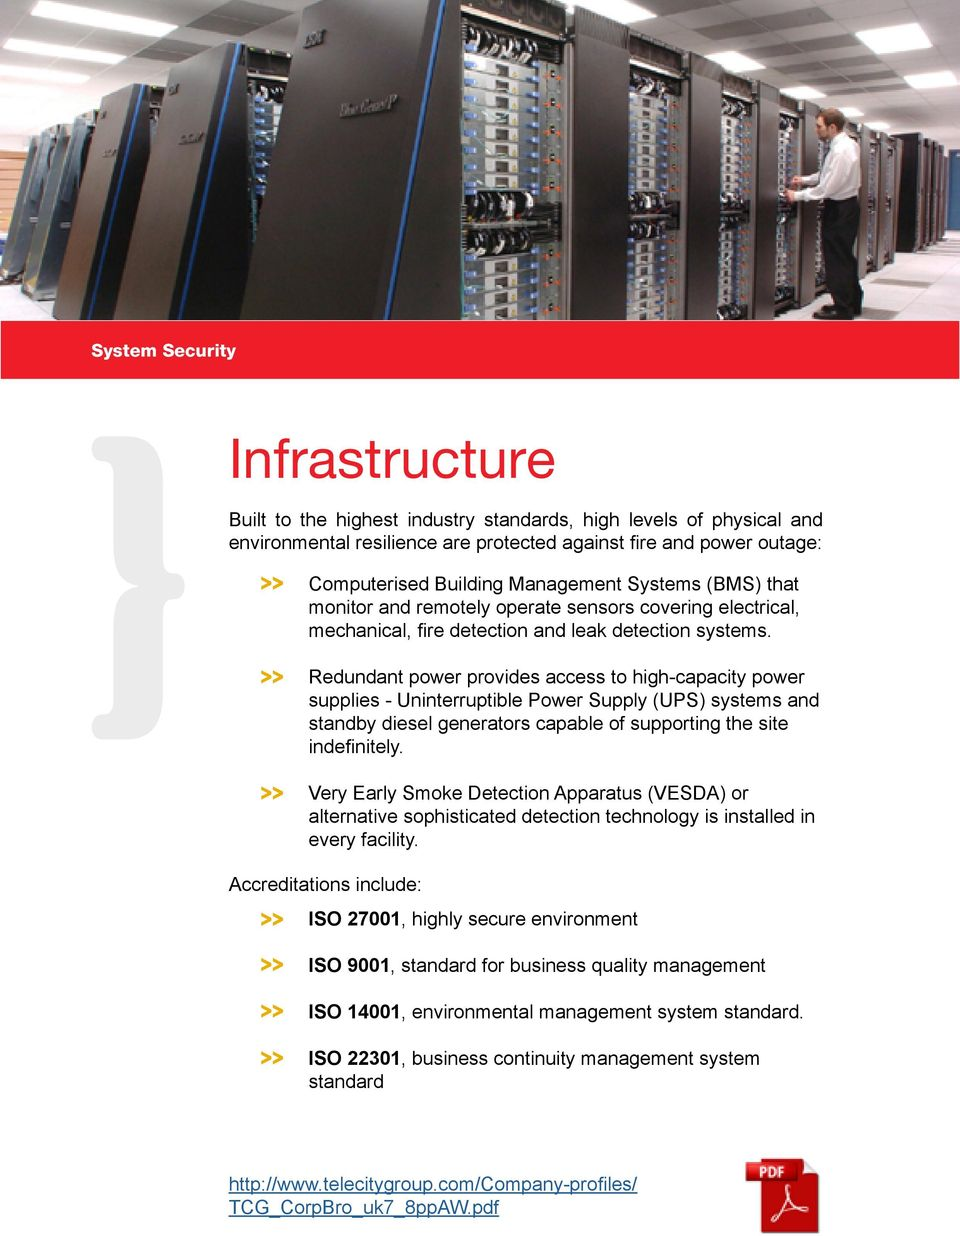 Redundant power provides access to high-capacity power supplies - Uninterruptible Power Supply (UPS) systems and standby diesel generators capable of supporting the site indefinitely.